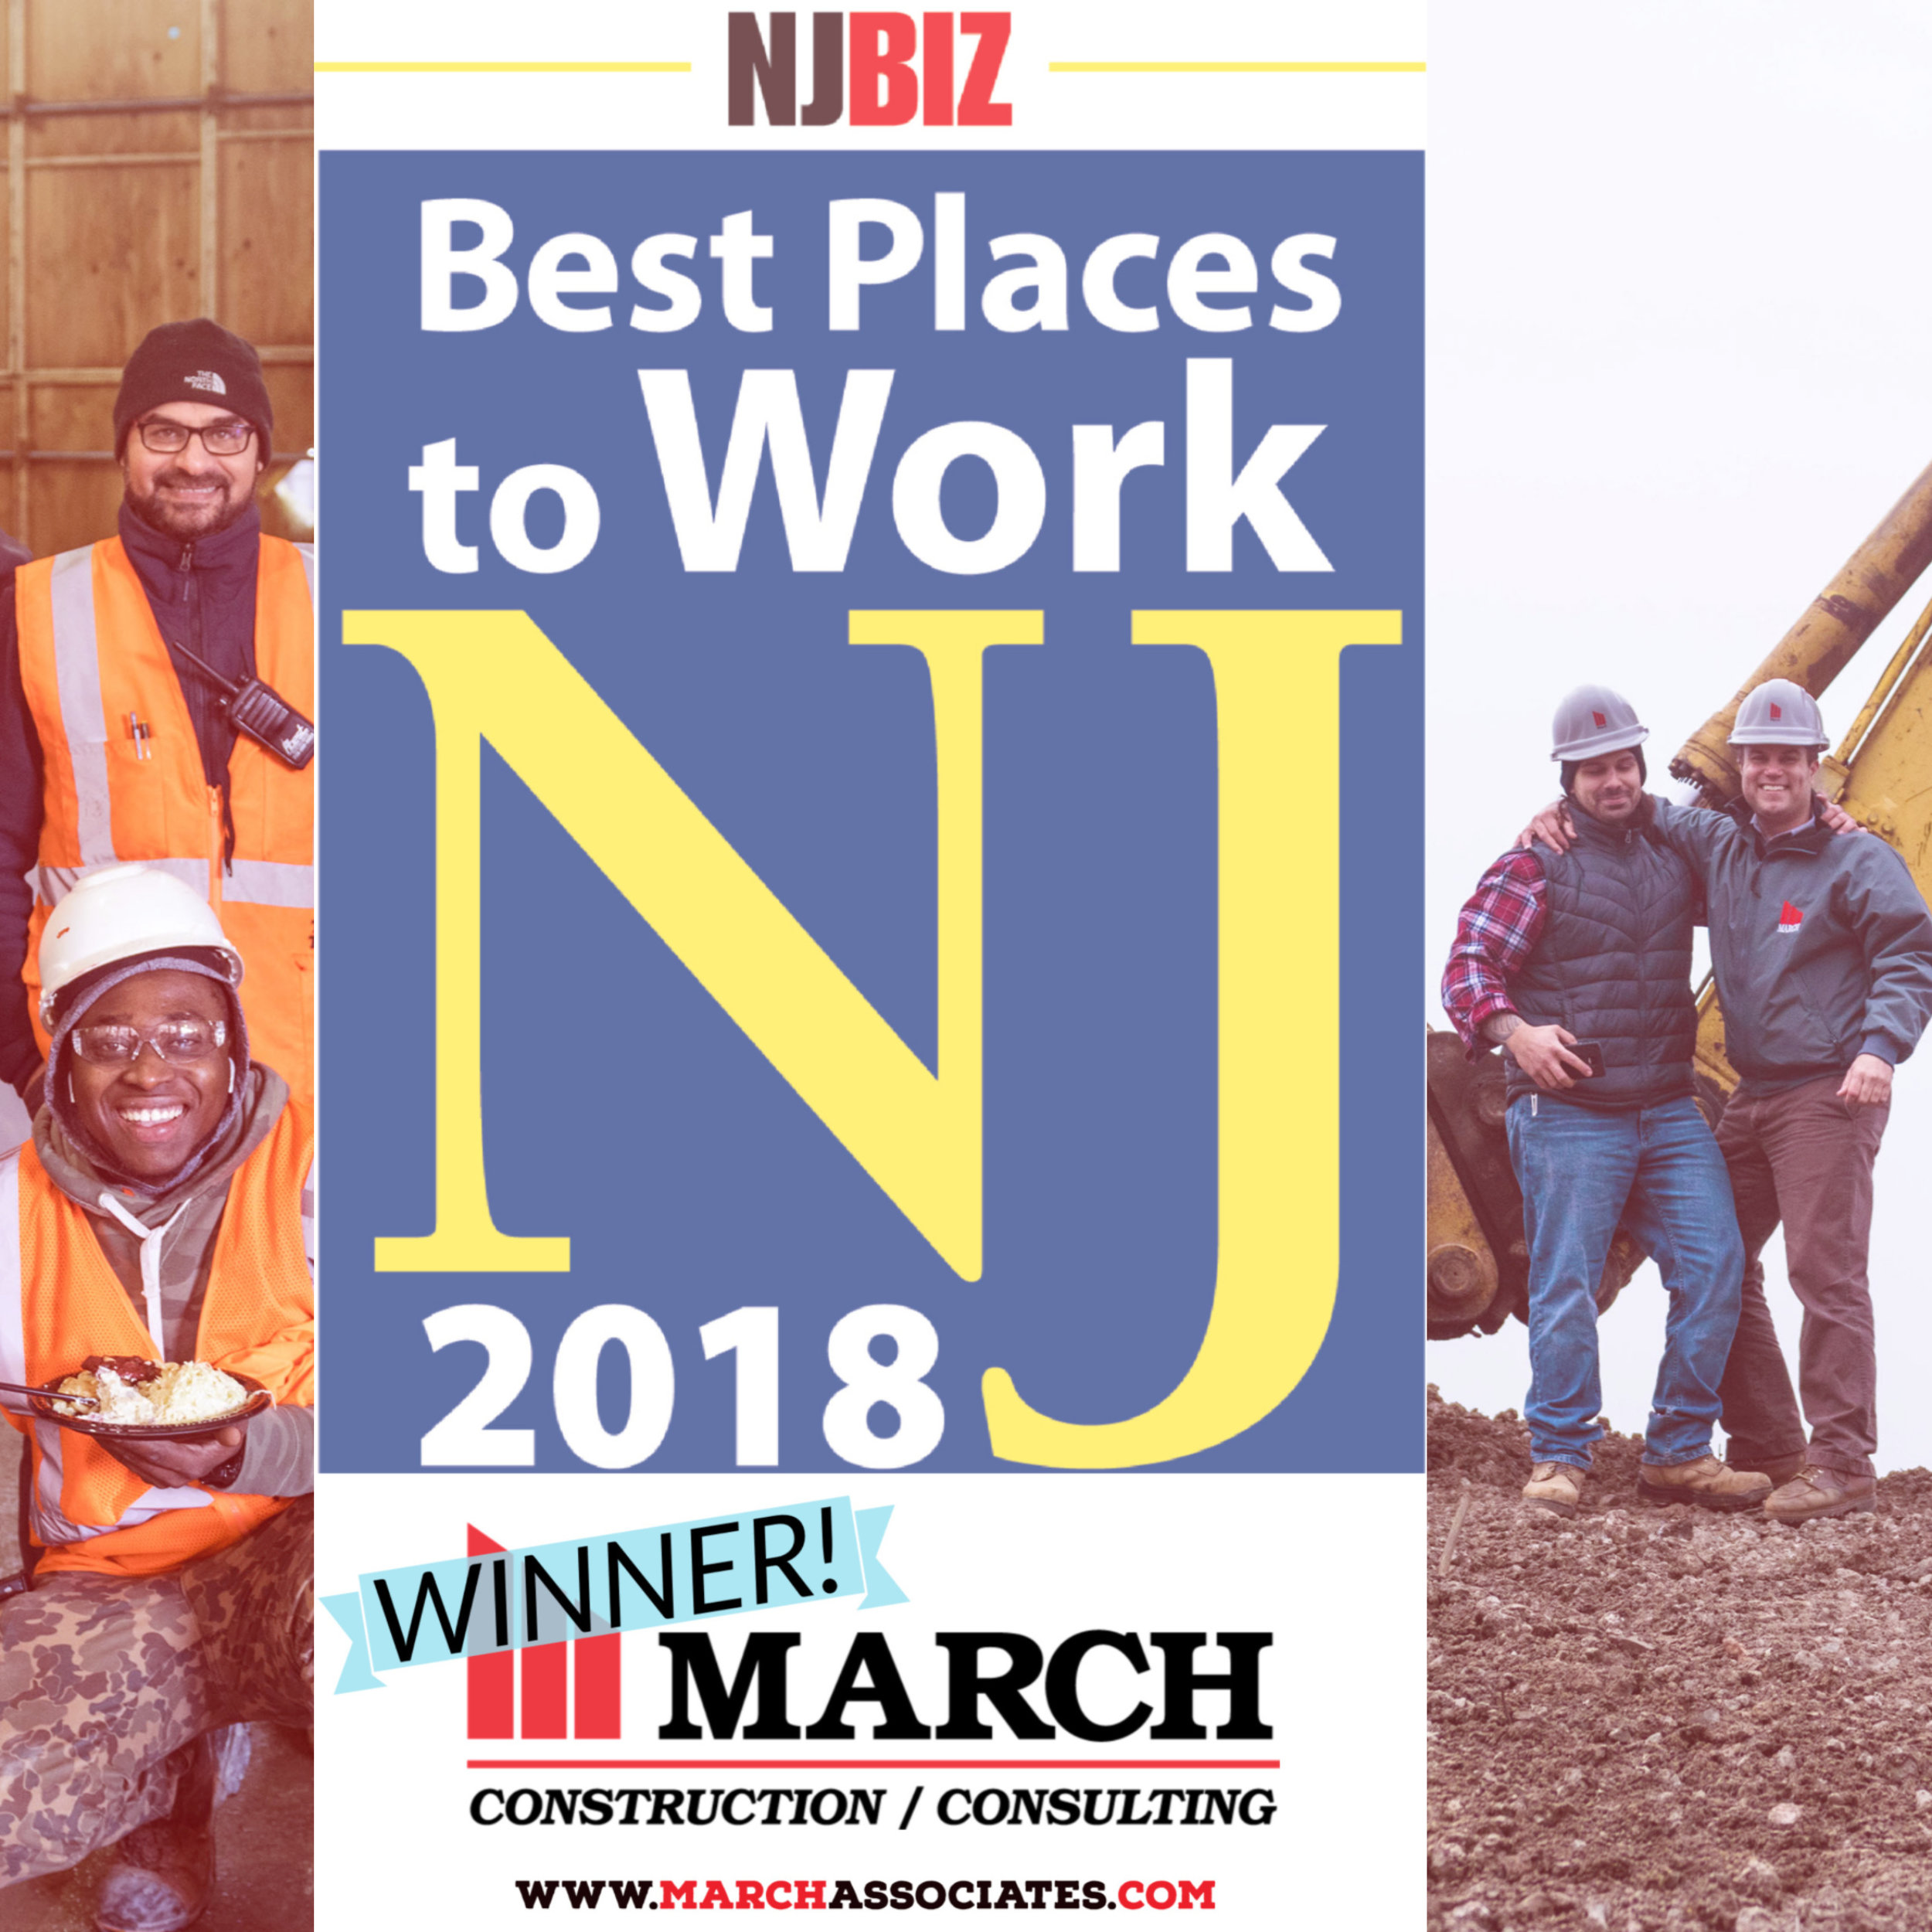 March awarded NJBIZ Top 100 Places to Work in NJ 2018!!